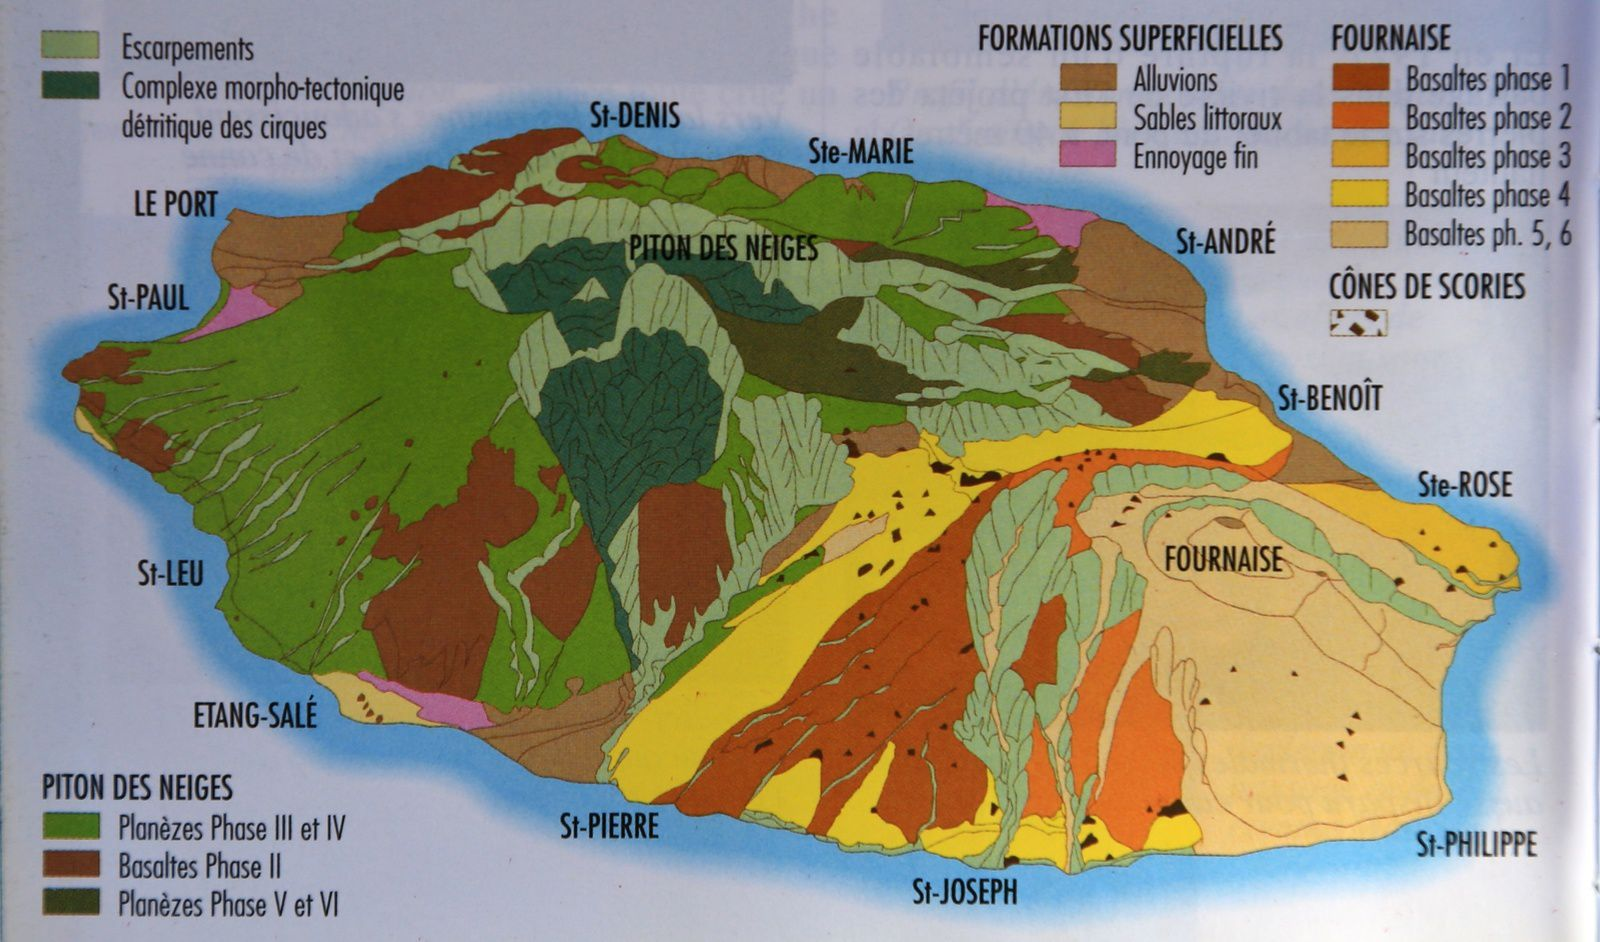 The volcanic massifs of Piton des Neiges and Piton de La Fournaise and their flows